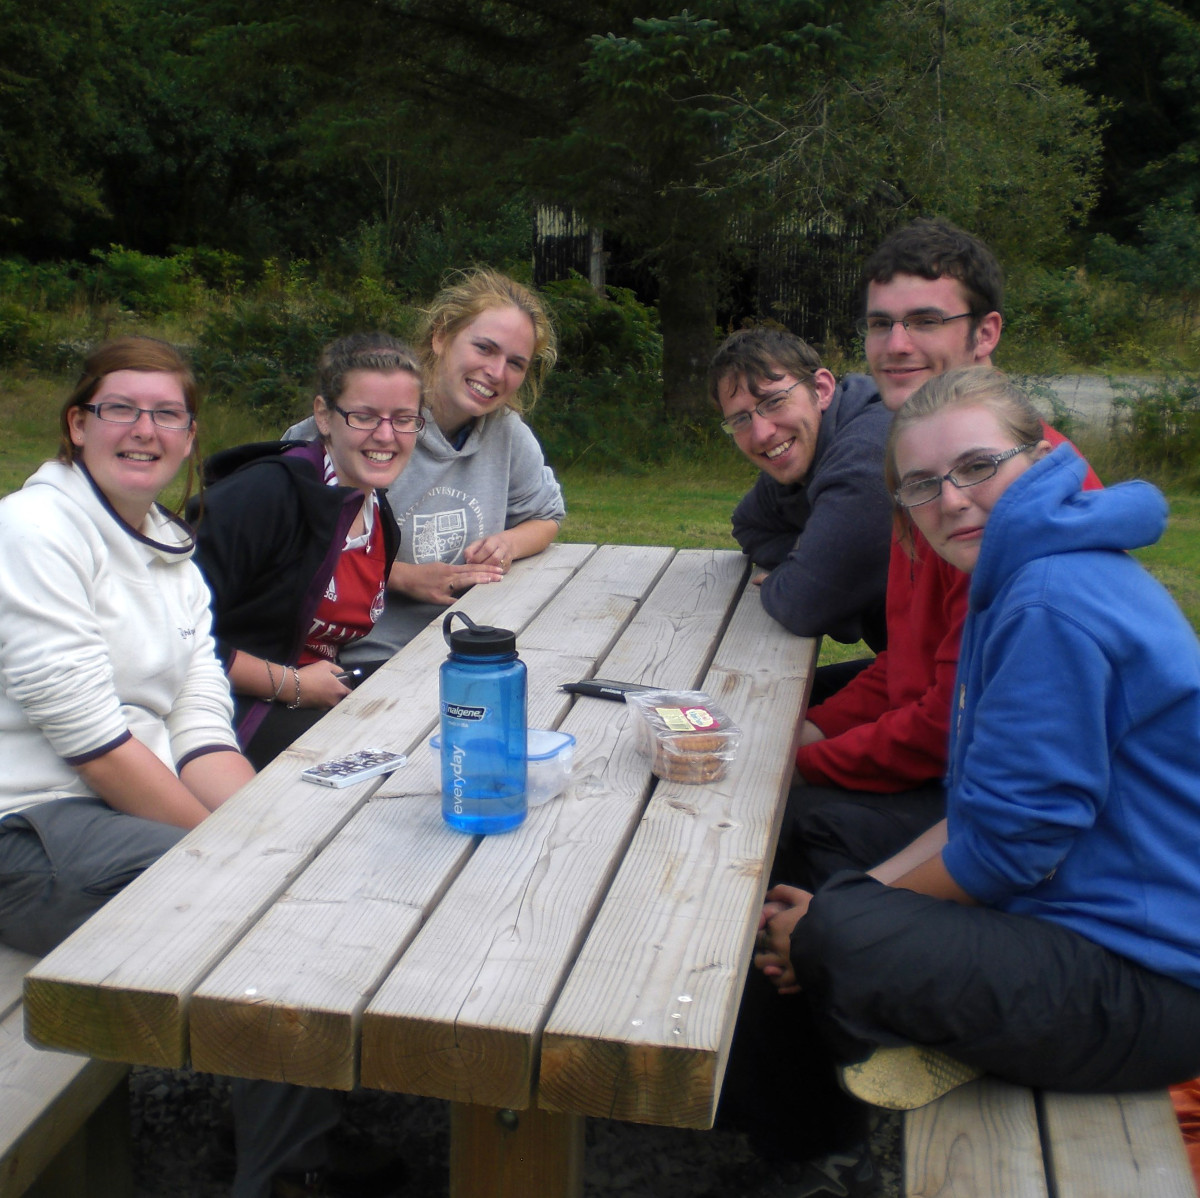 Celebrating a successful Network DofE Gold expedition